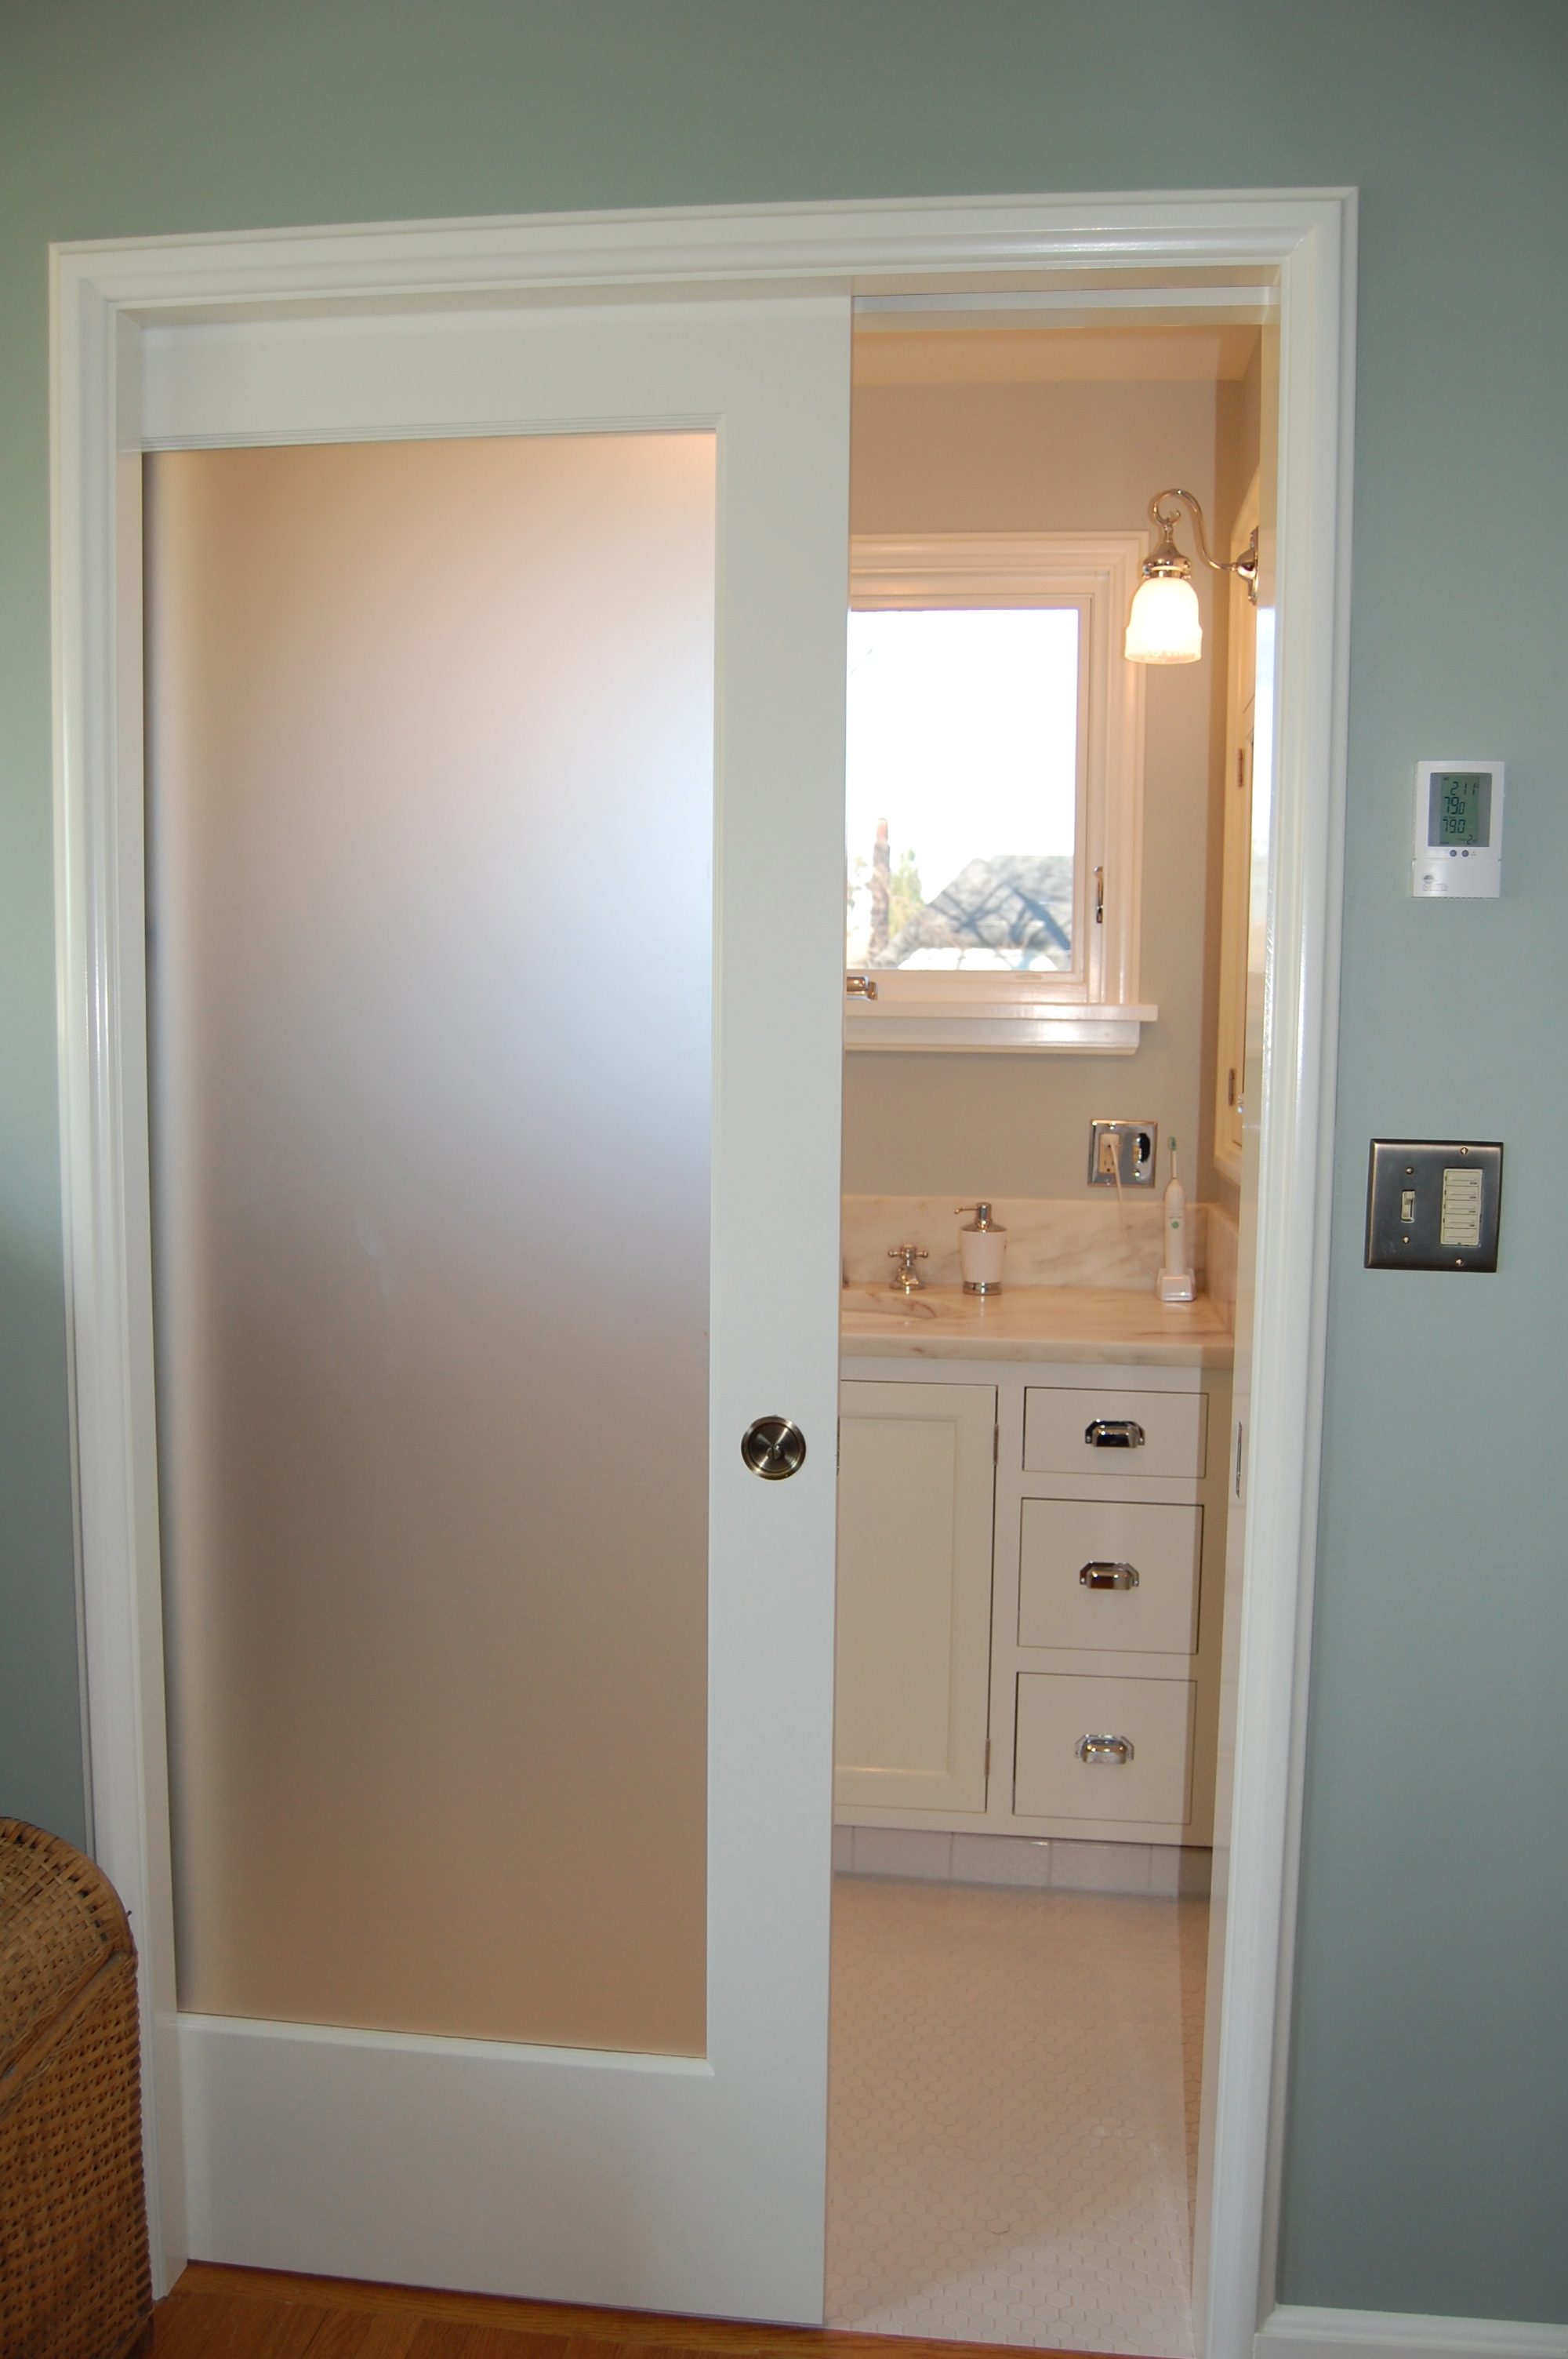 Interior Bathroom Door Ideasalameda remodel is complete pocket doors save and glasses